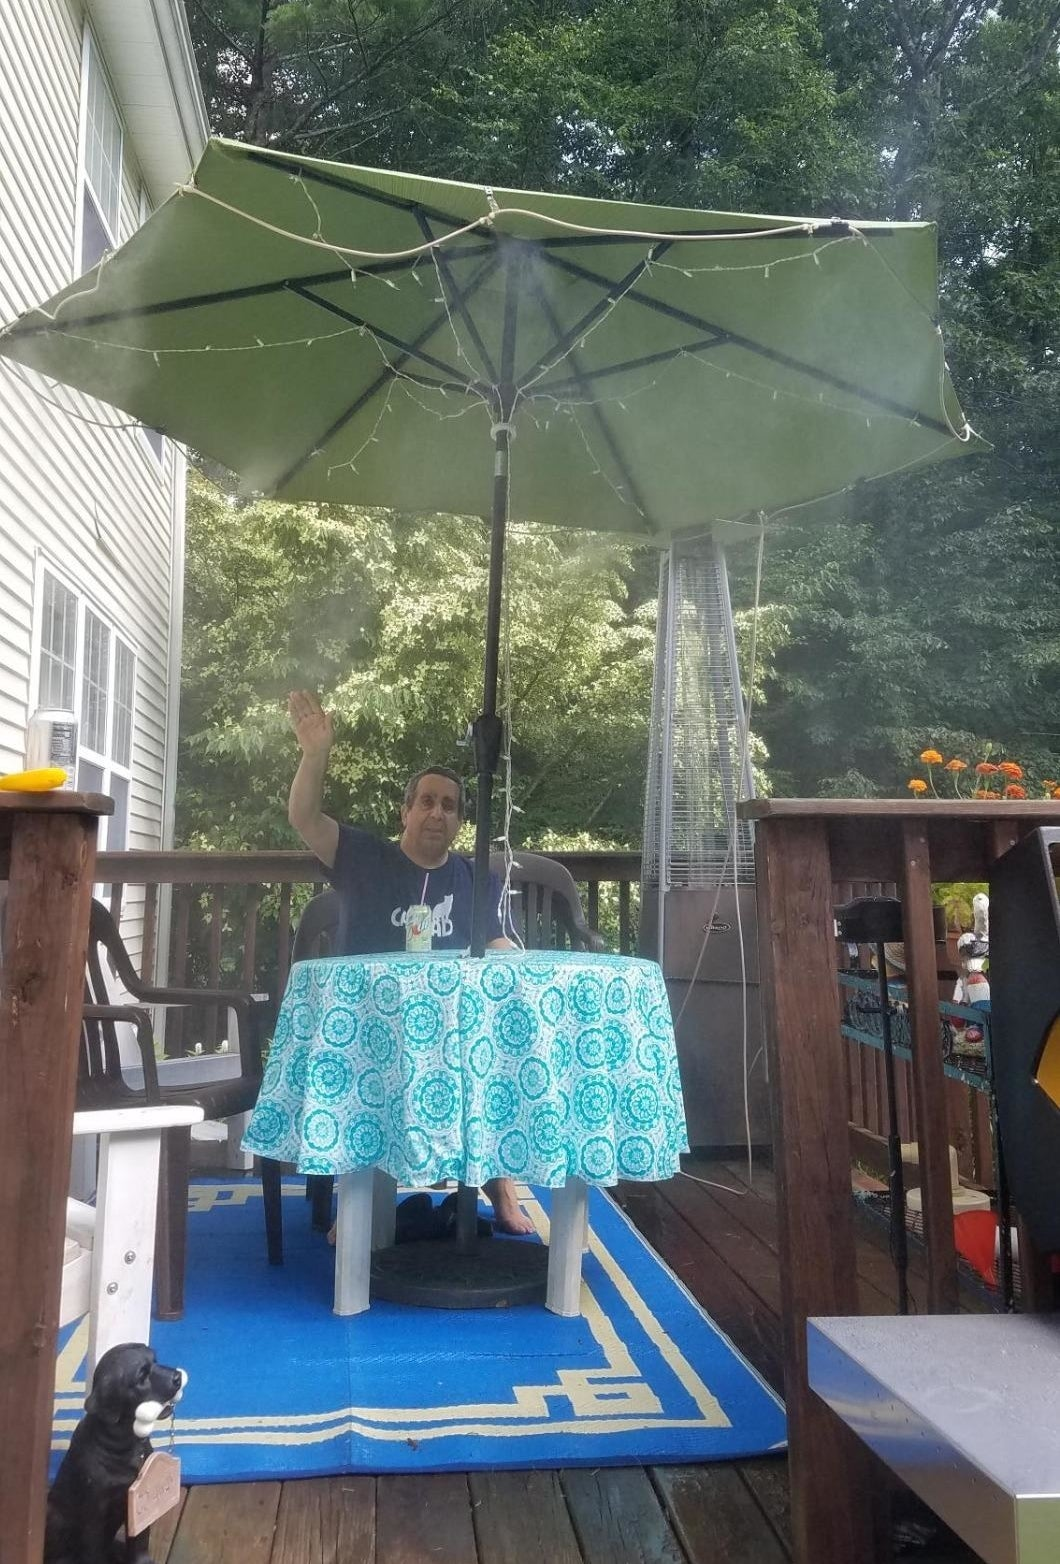 a reviewer sits on their patio under an umbrella with the orbit outdoor mist cooling system attached to it and spraying mist